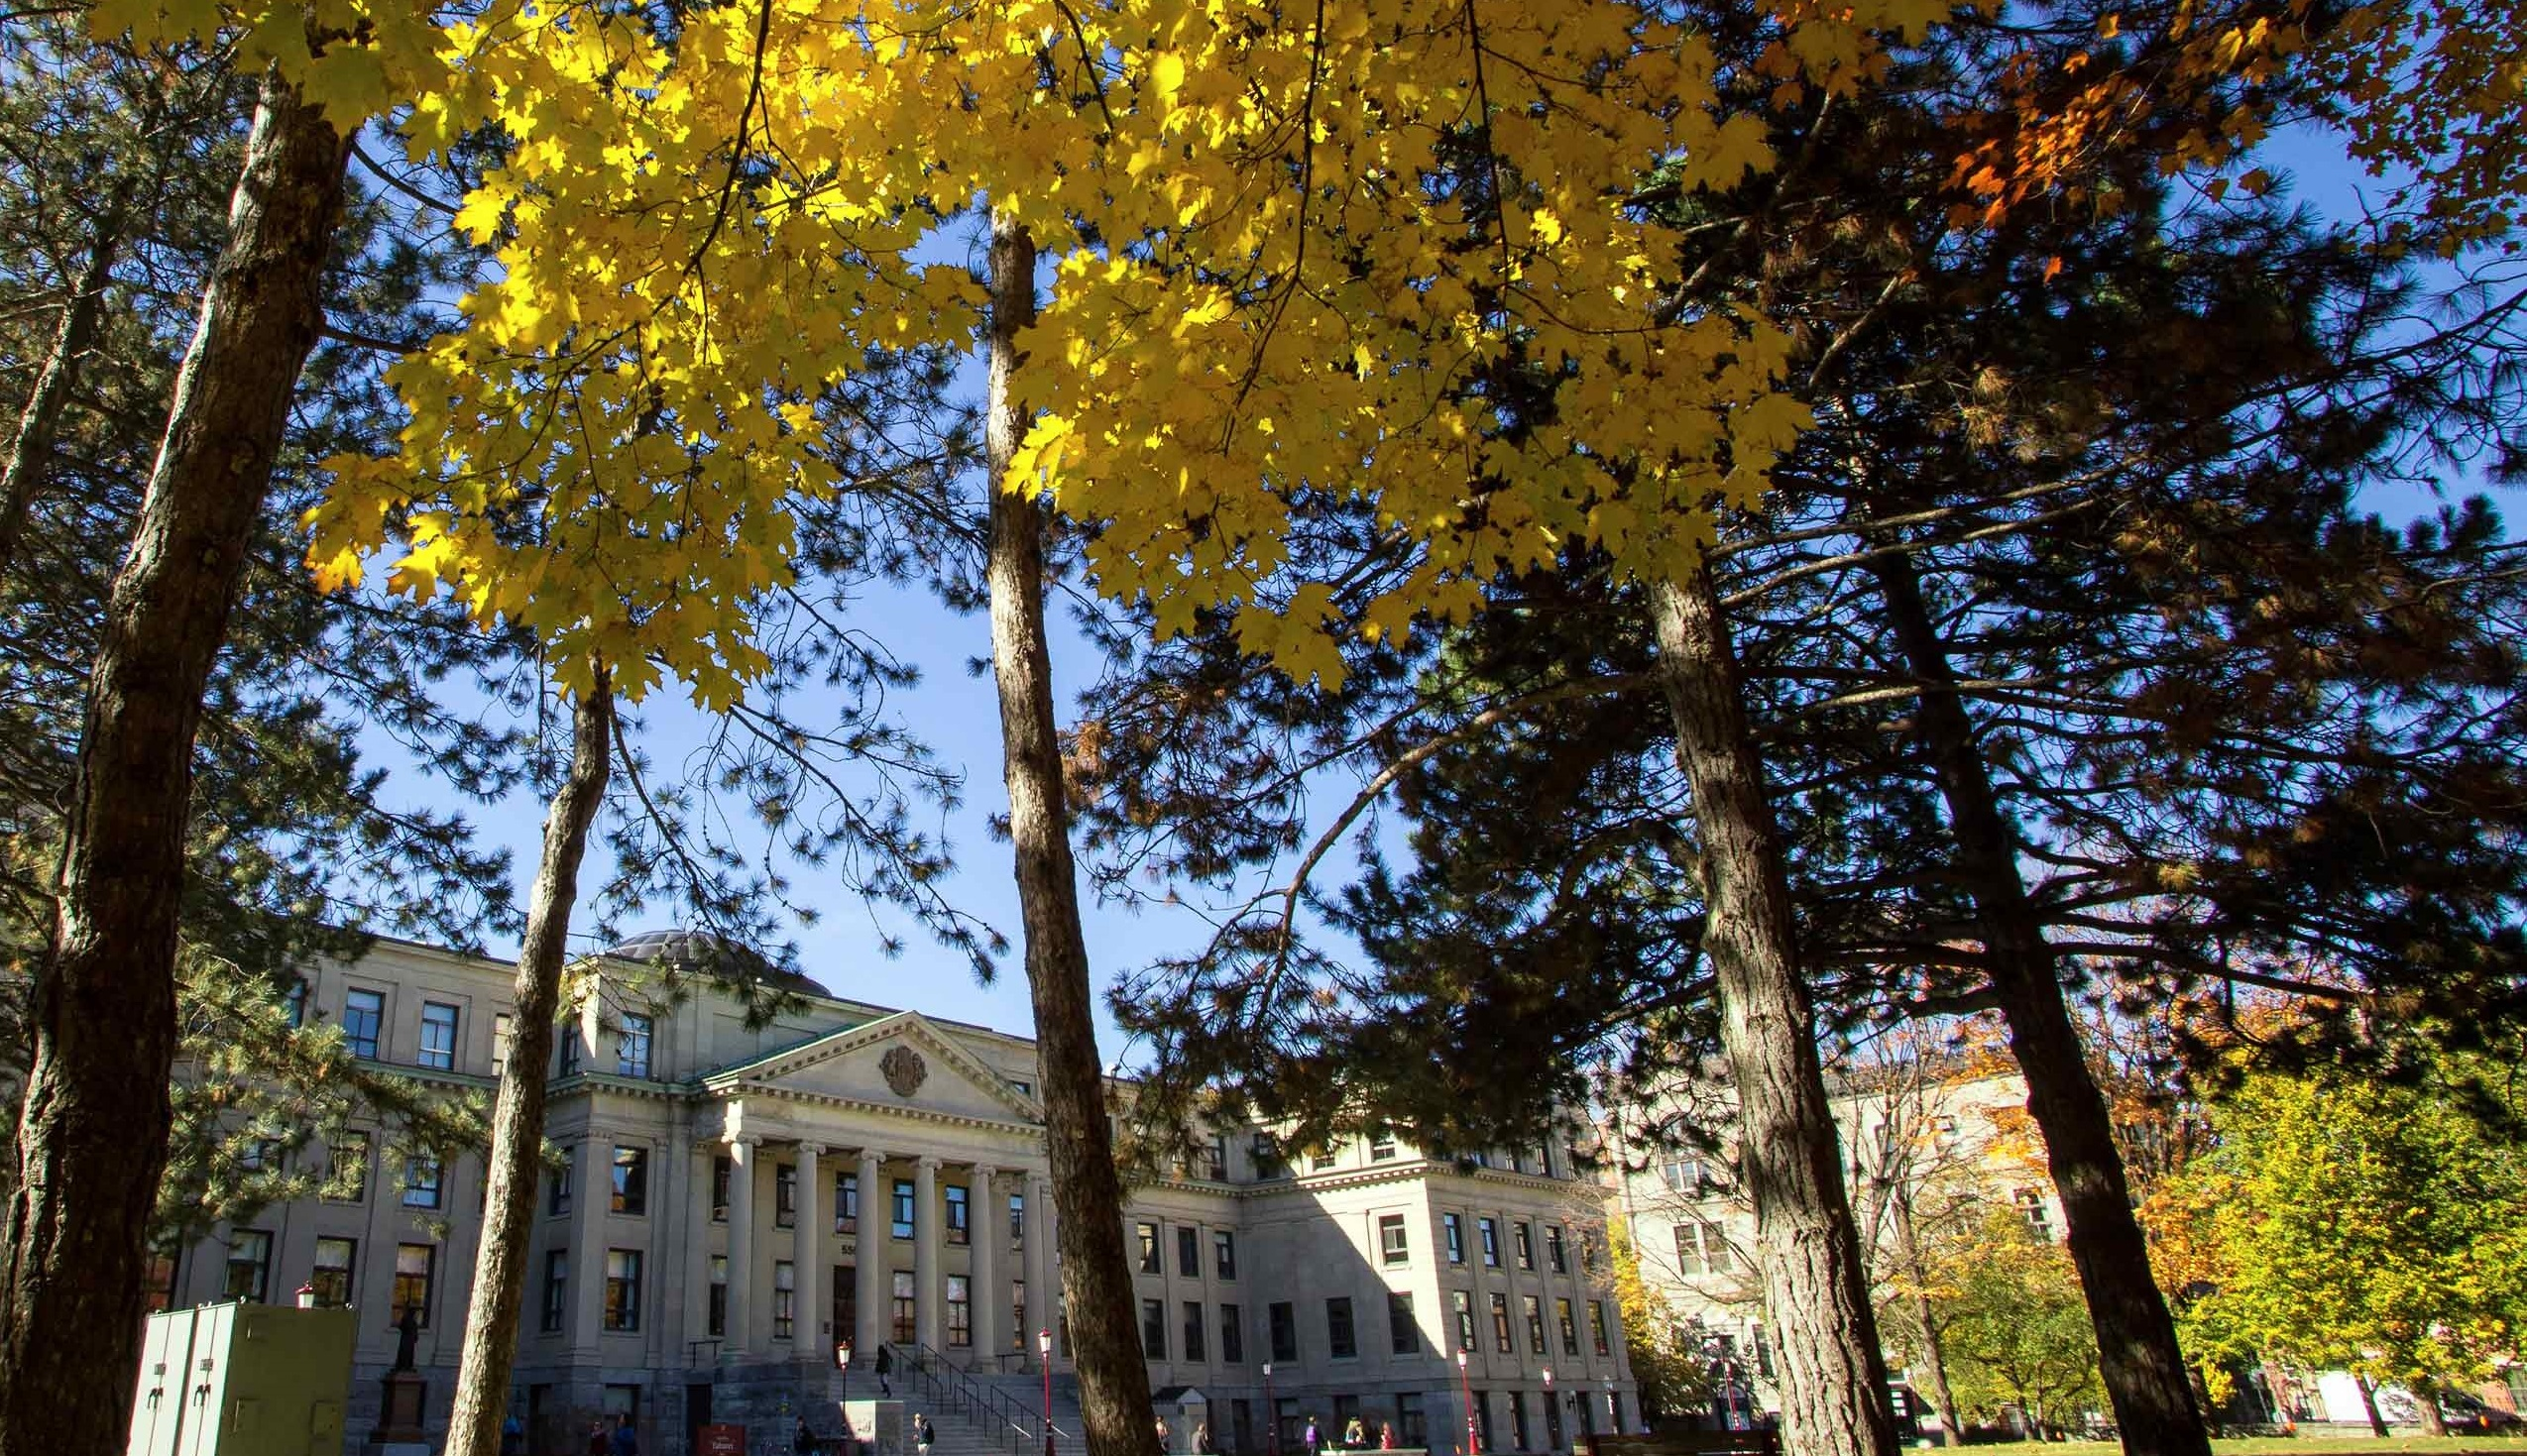 Tabaret Hall in the fall, trees with leaves turning color in the forefront